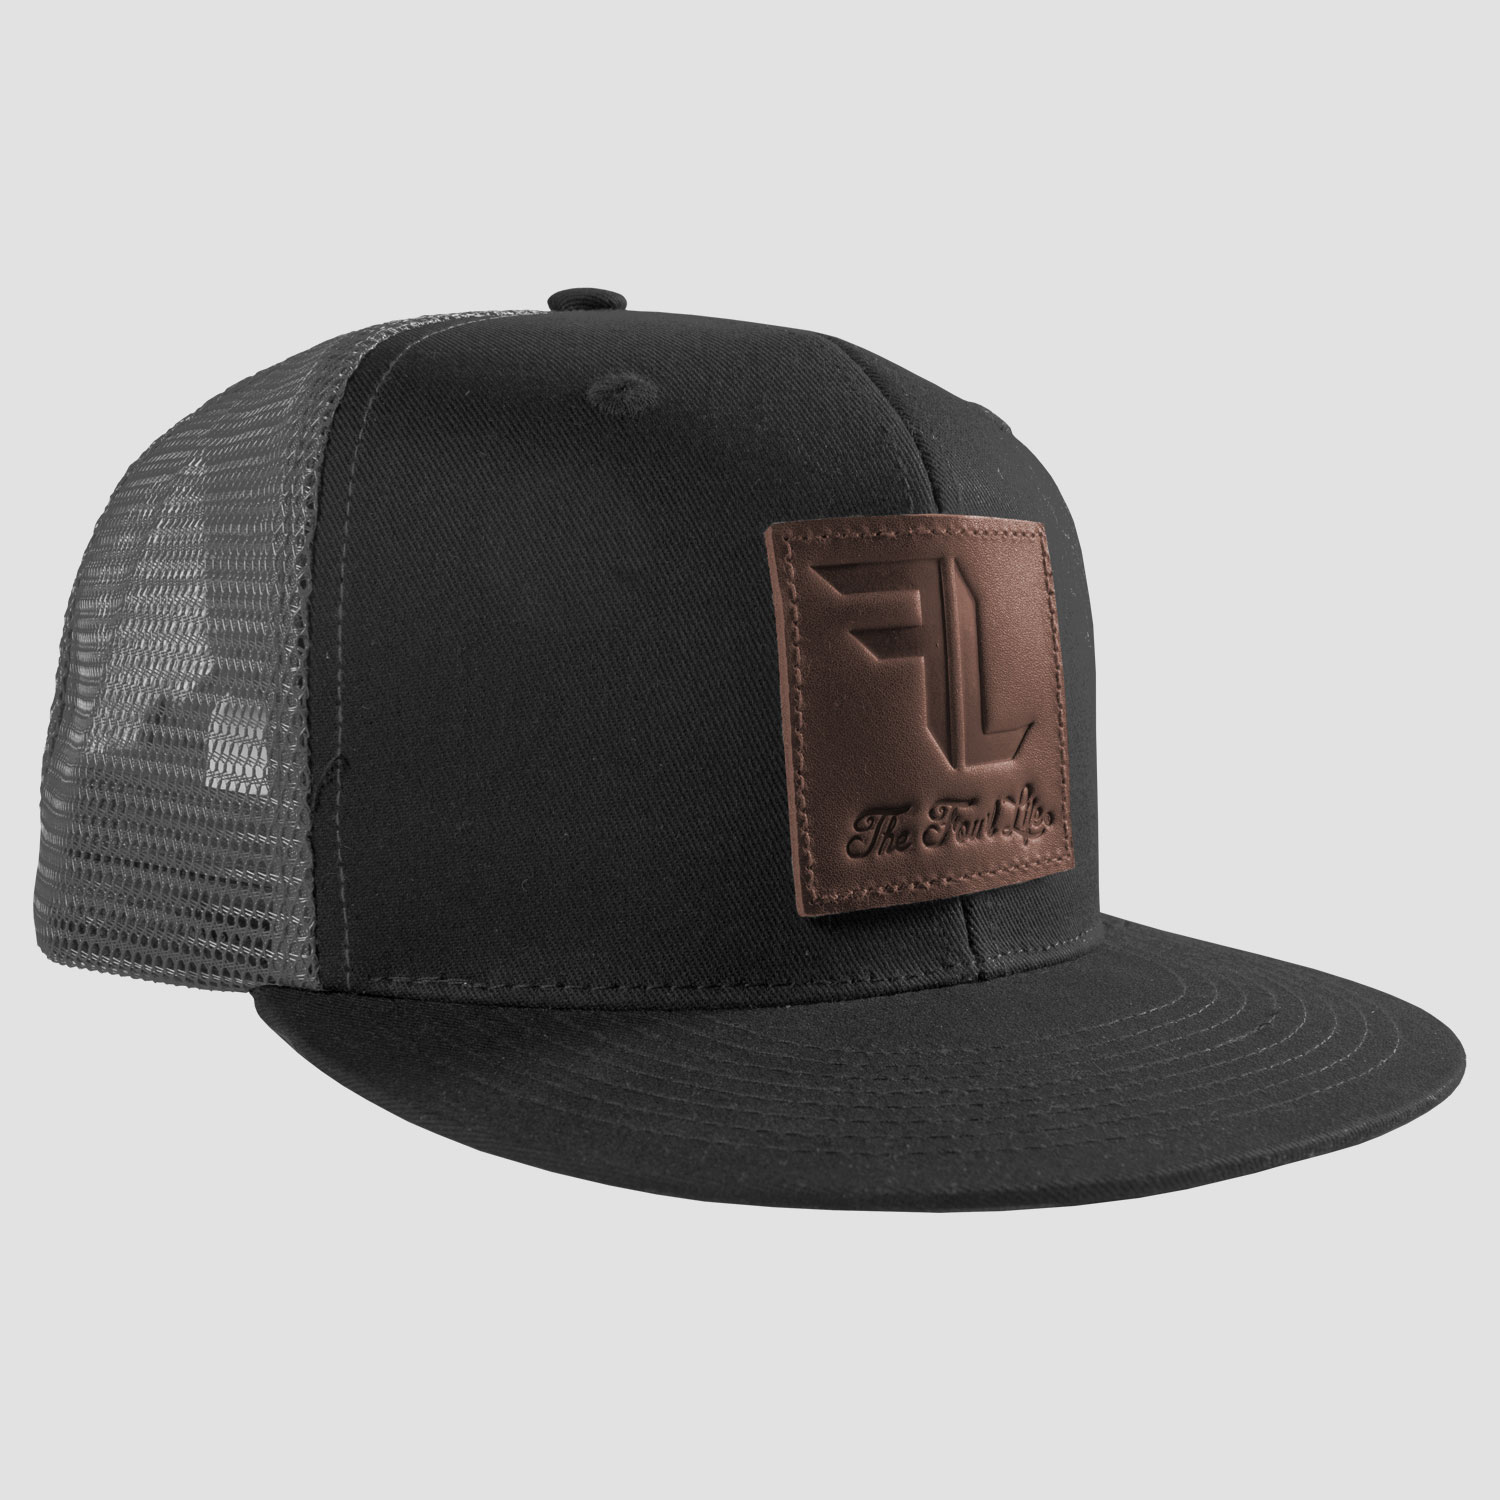 a00ce749e FL Leather Patch Hat - The Fowl Life